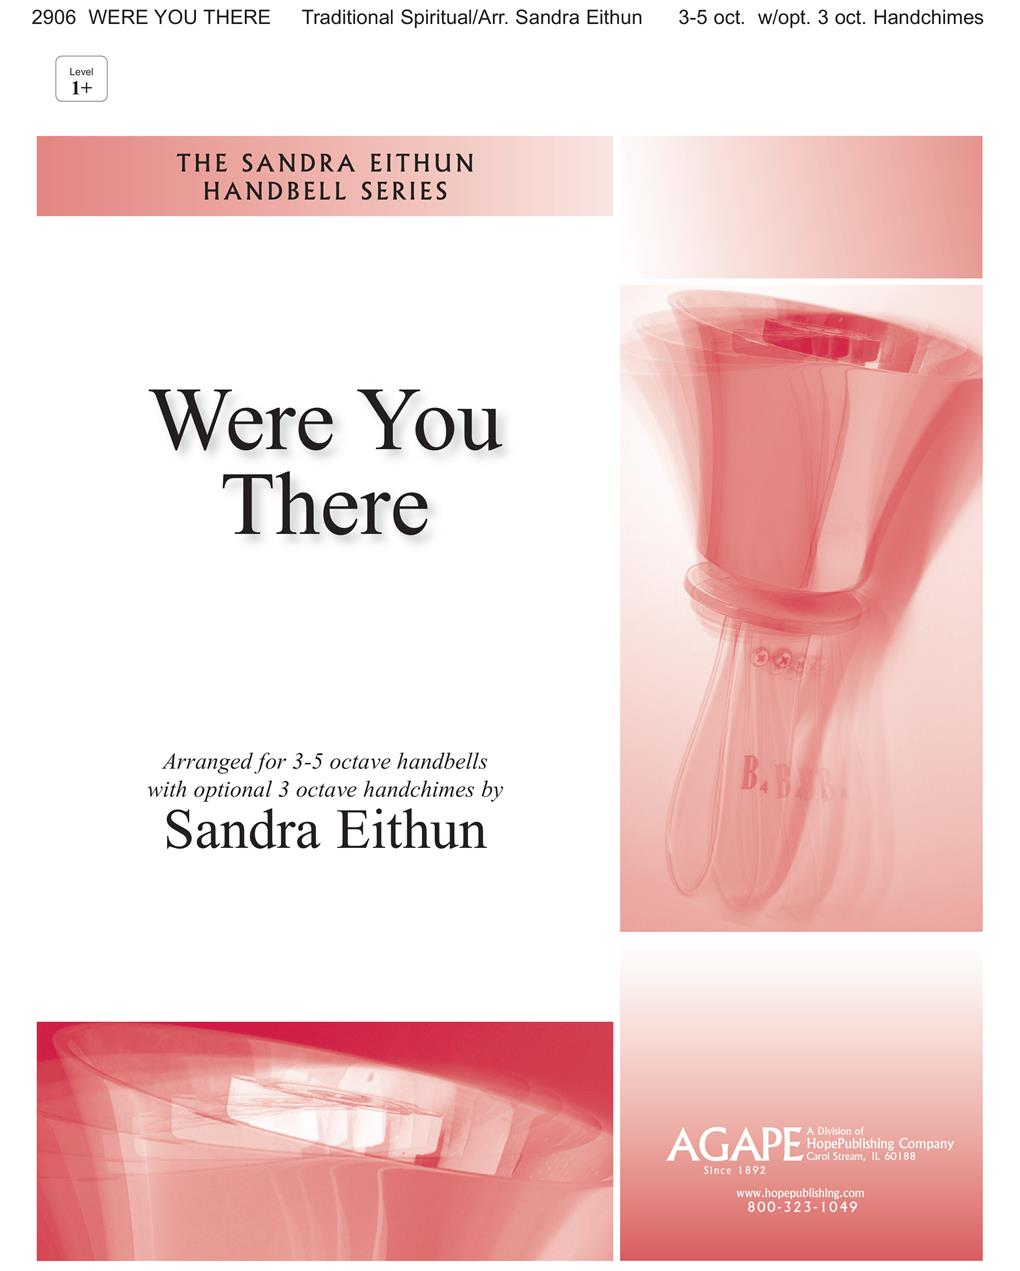 Were You There - 3-5 Oct. Cover Image